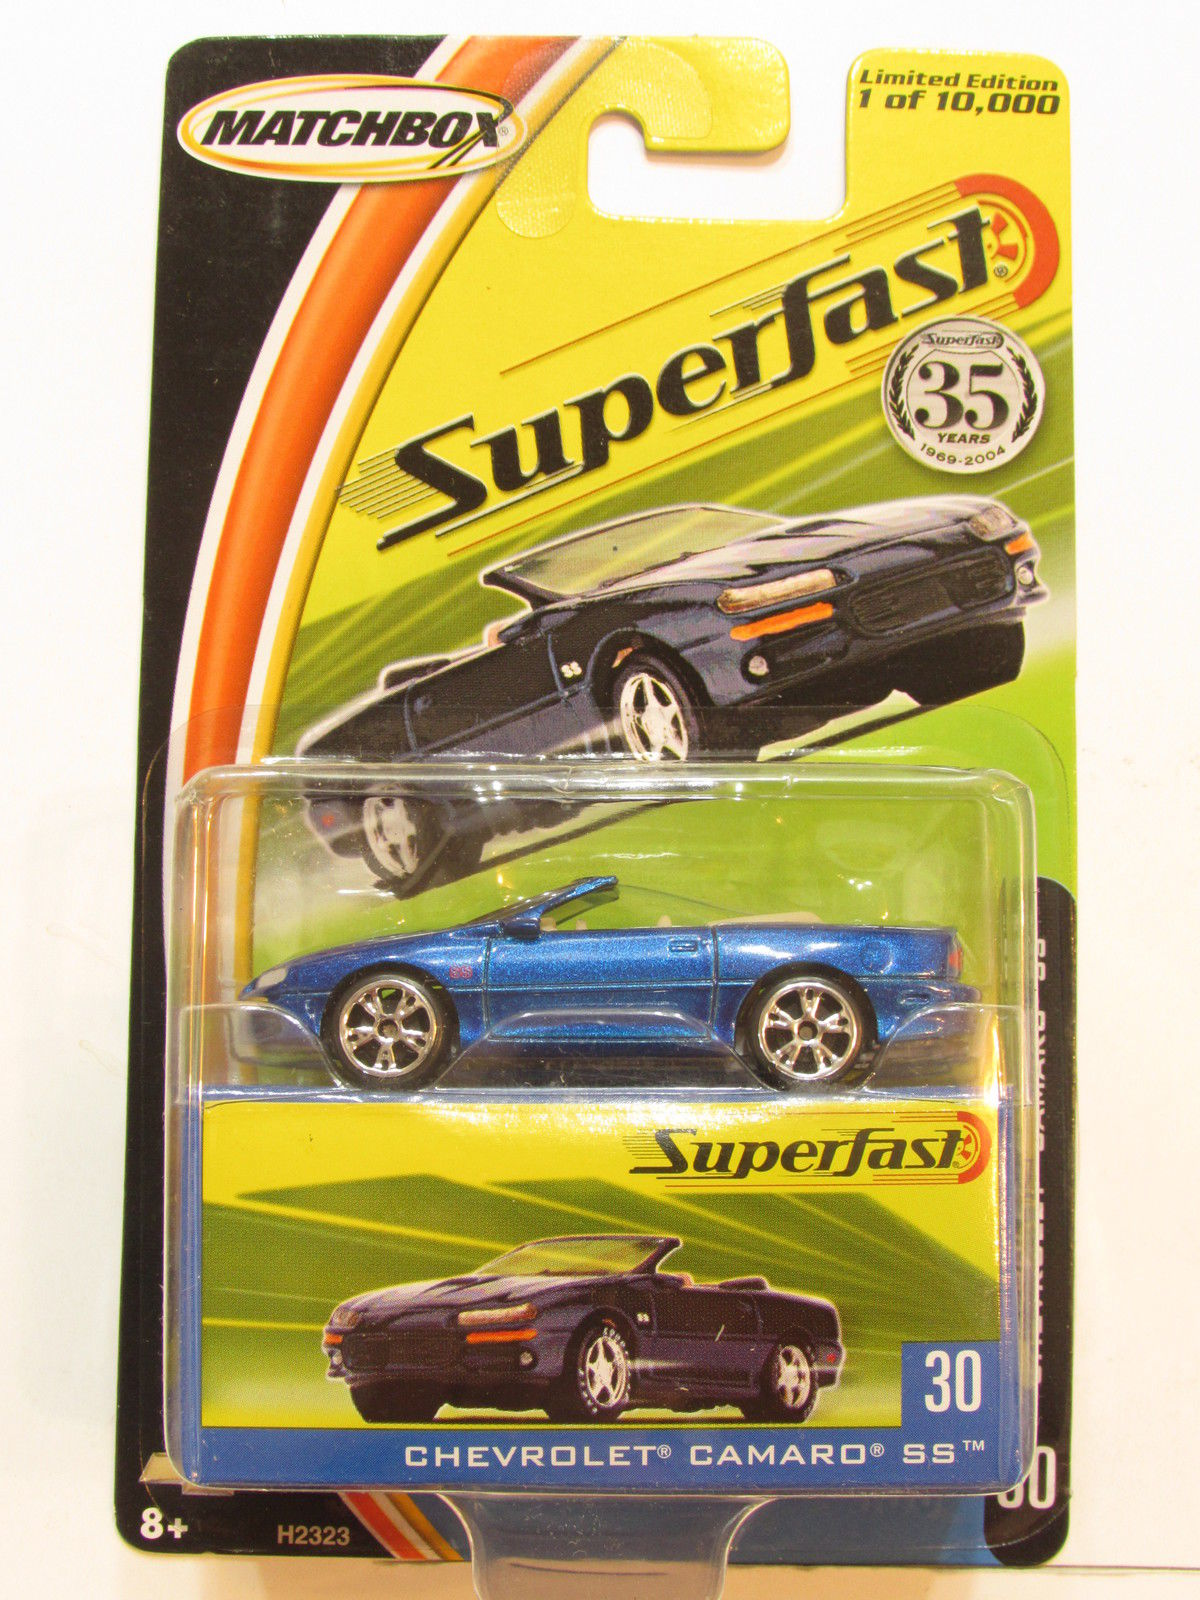 MATCHBOX 2004 SUPERFAST CHEVROLET CAMARO SS #30